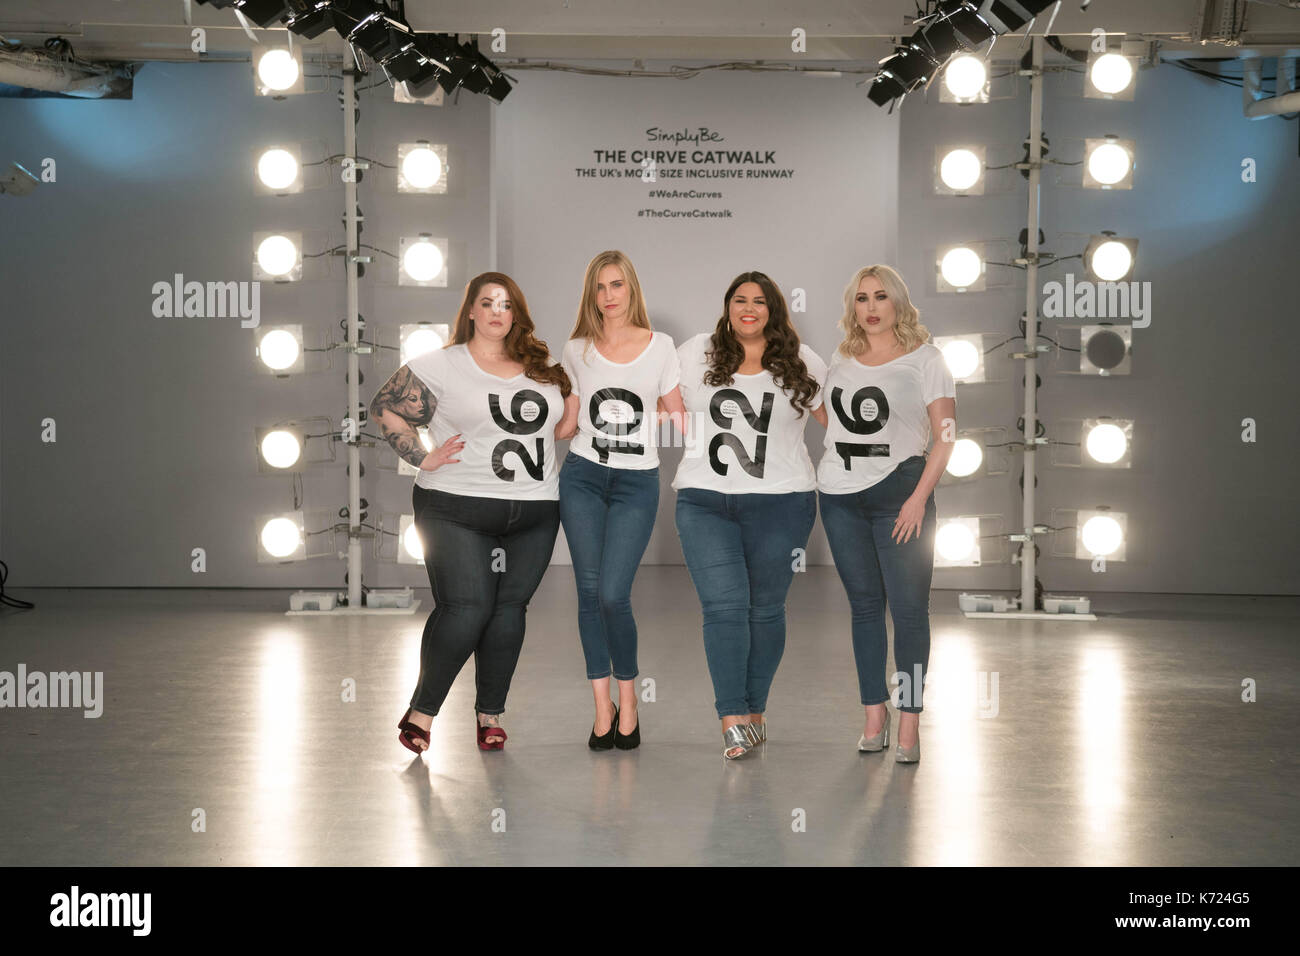 London, UK. 14th Sep, 2017. Models (left to right) Tess Holliday, Kelly Knox, Callie Thorpe and Hayley Hasselhof wearing tee shirts with their sizes on at a photo call for the Curve Catwalk, a fashion show celebrating diversity of body shapes and forms, at The Vinyl Factory as part of London Fashion Week in London. Photo date: Thursday, September 14, 2017. Photo credit should read Credit: Roger Garfield/Alamy Live News - Stock Image